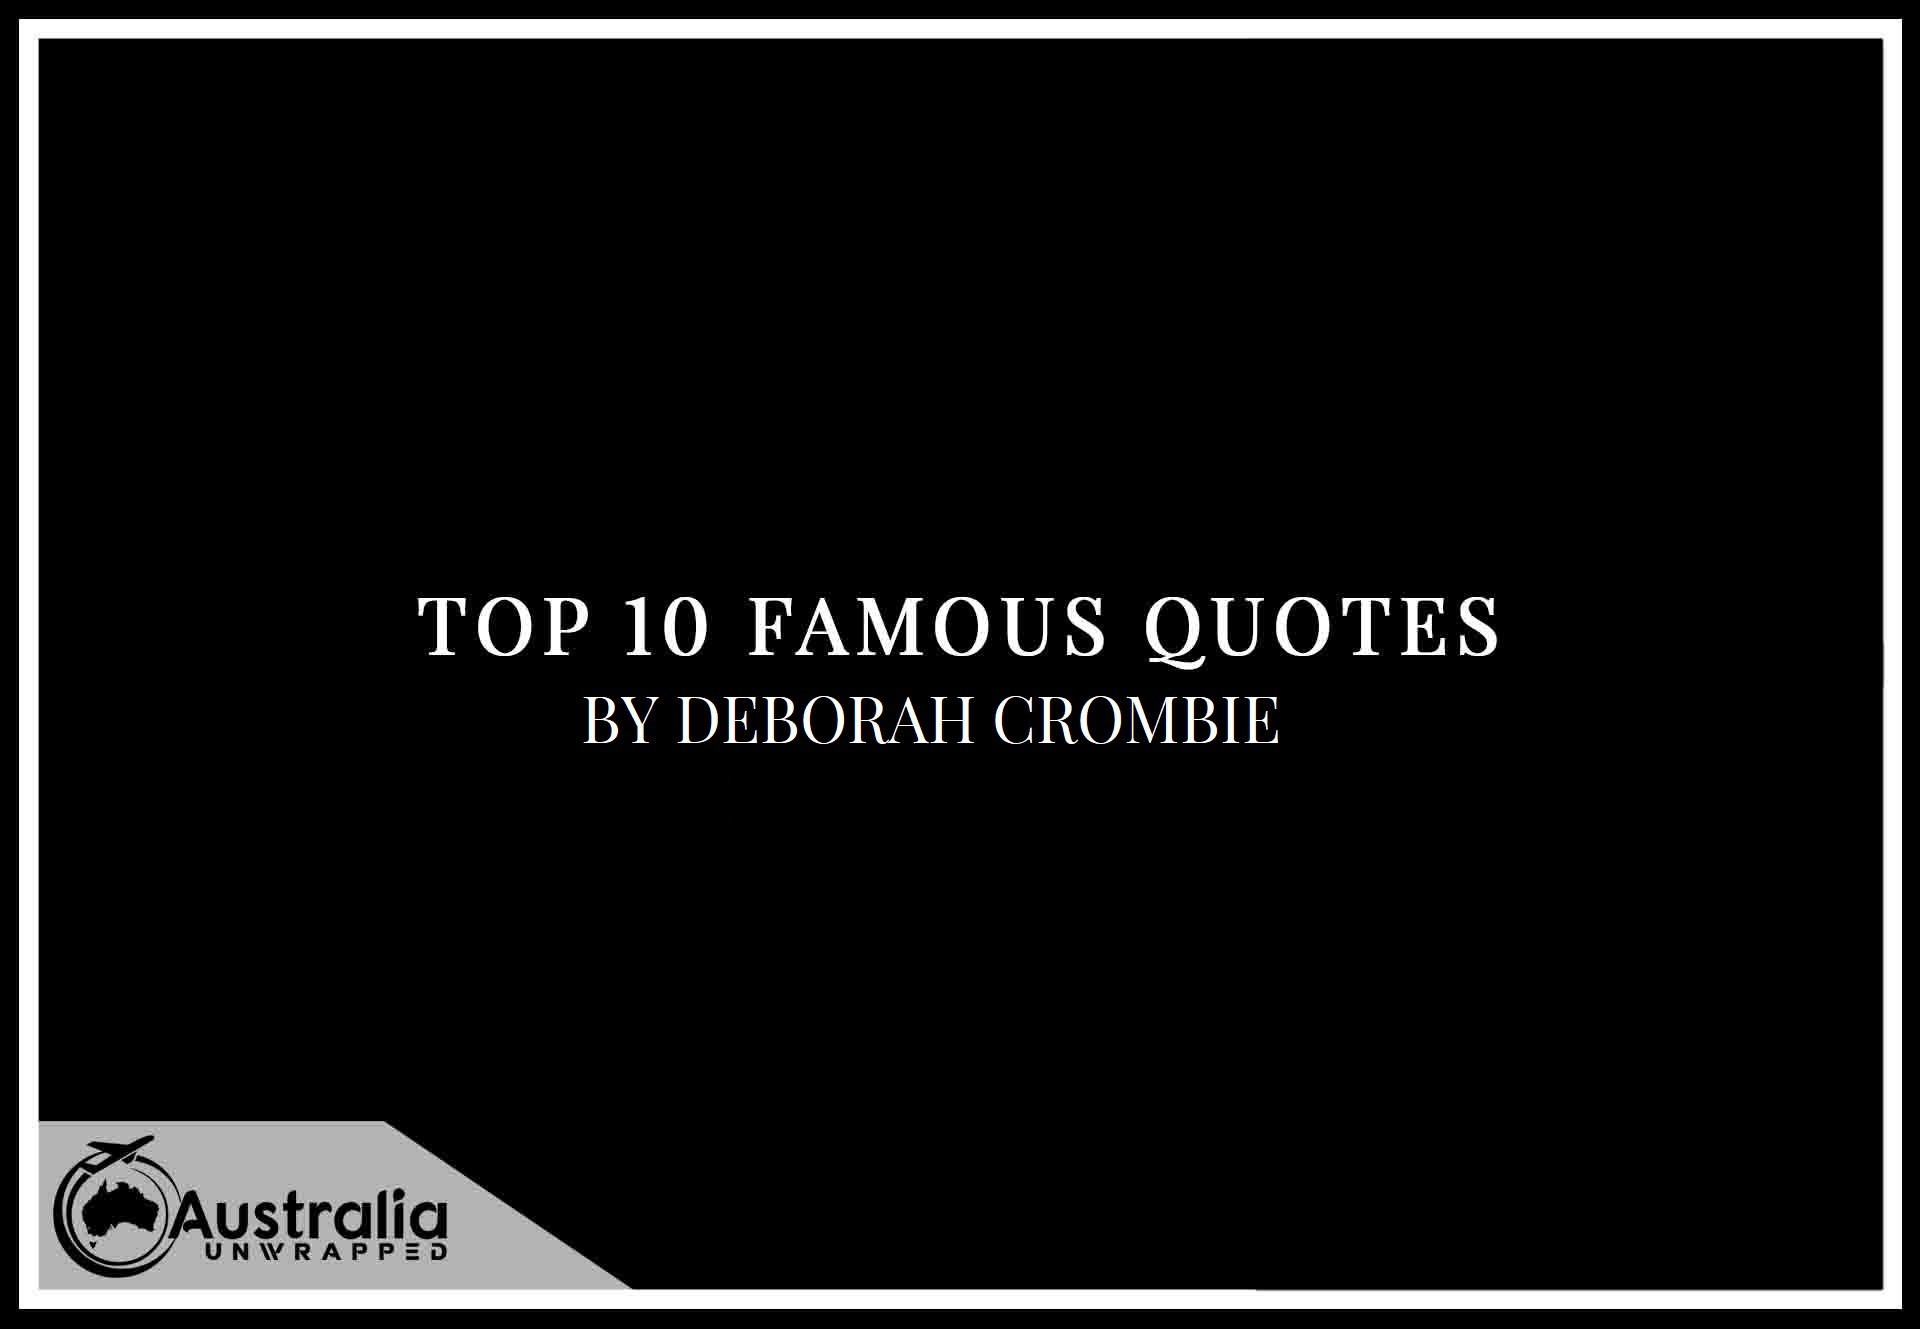 Deborah Crombie's Top 10 Popular and Famous Quotes